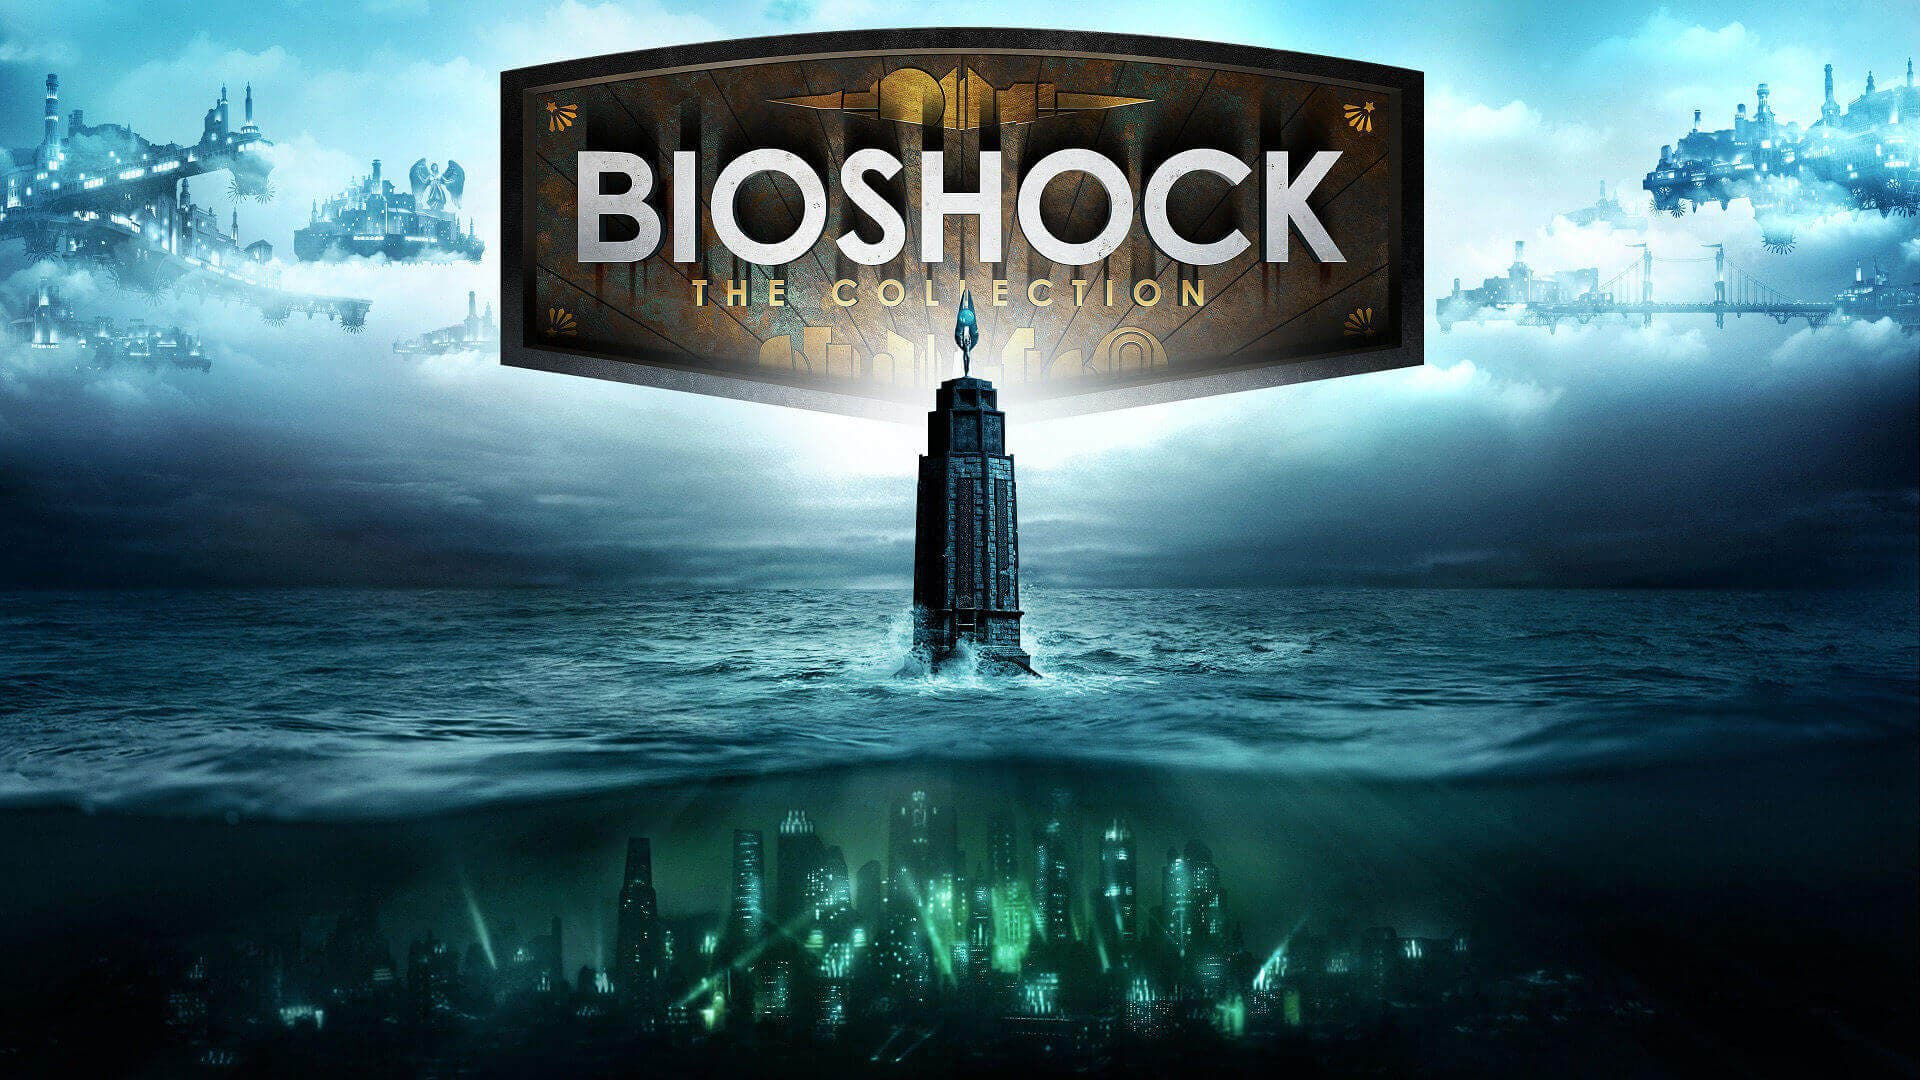 A Digital Foundry le decepciona el parche de Bioshock The Collection para Xbox One X 4